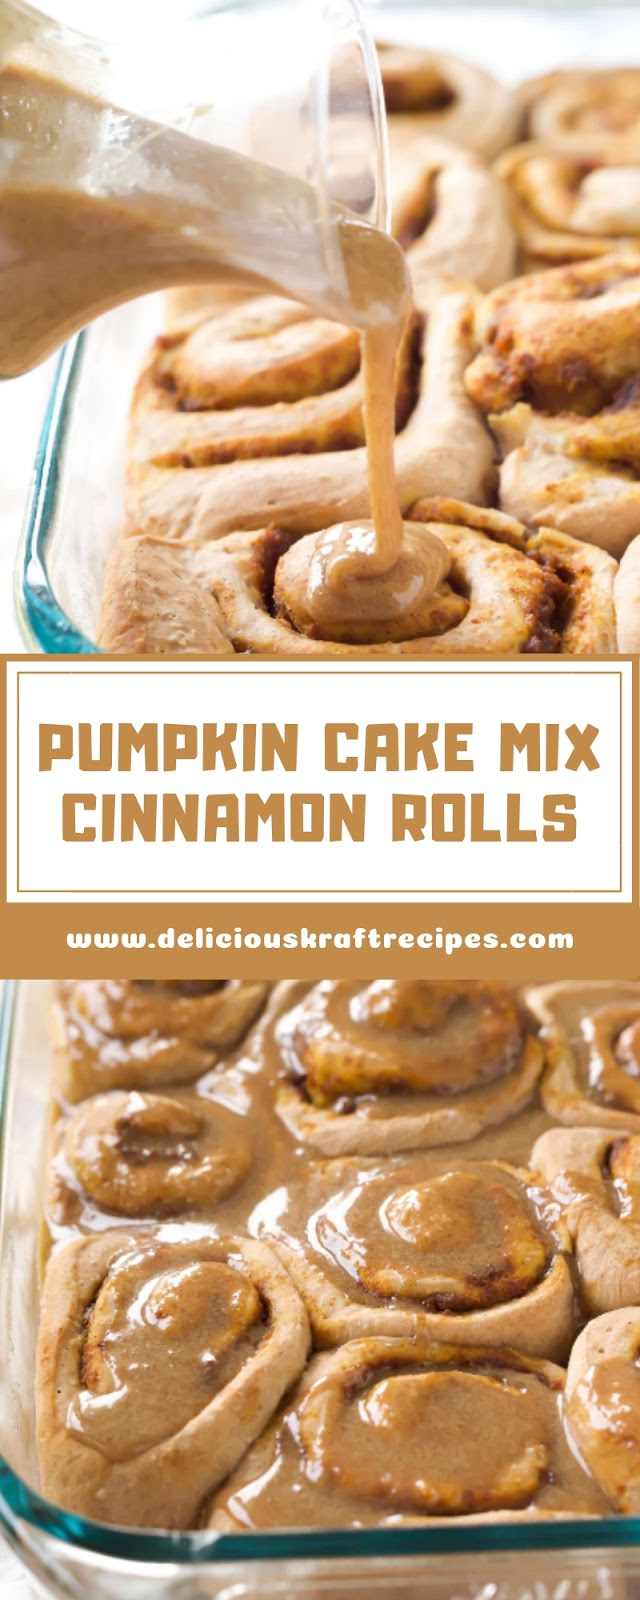 PUMPKIN CAKE MIX CINNAMON ROLLS